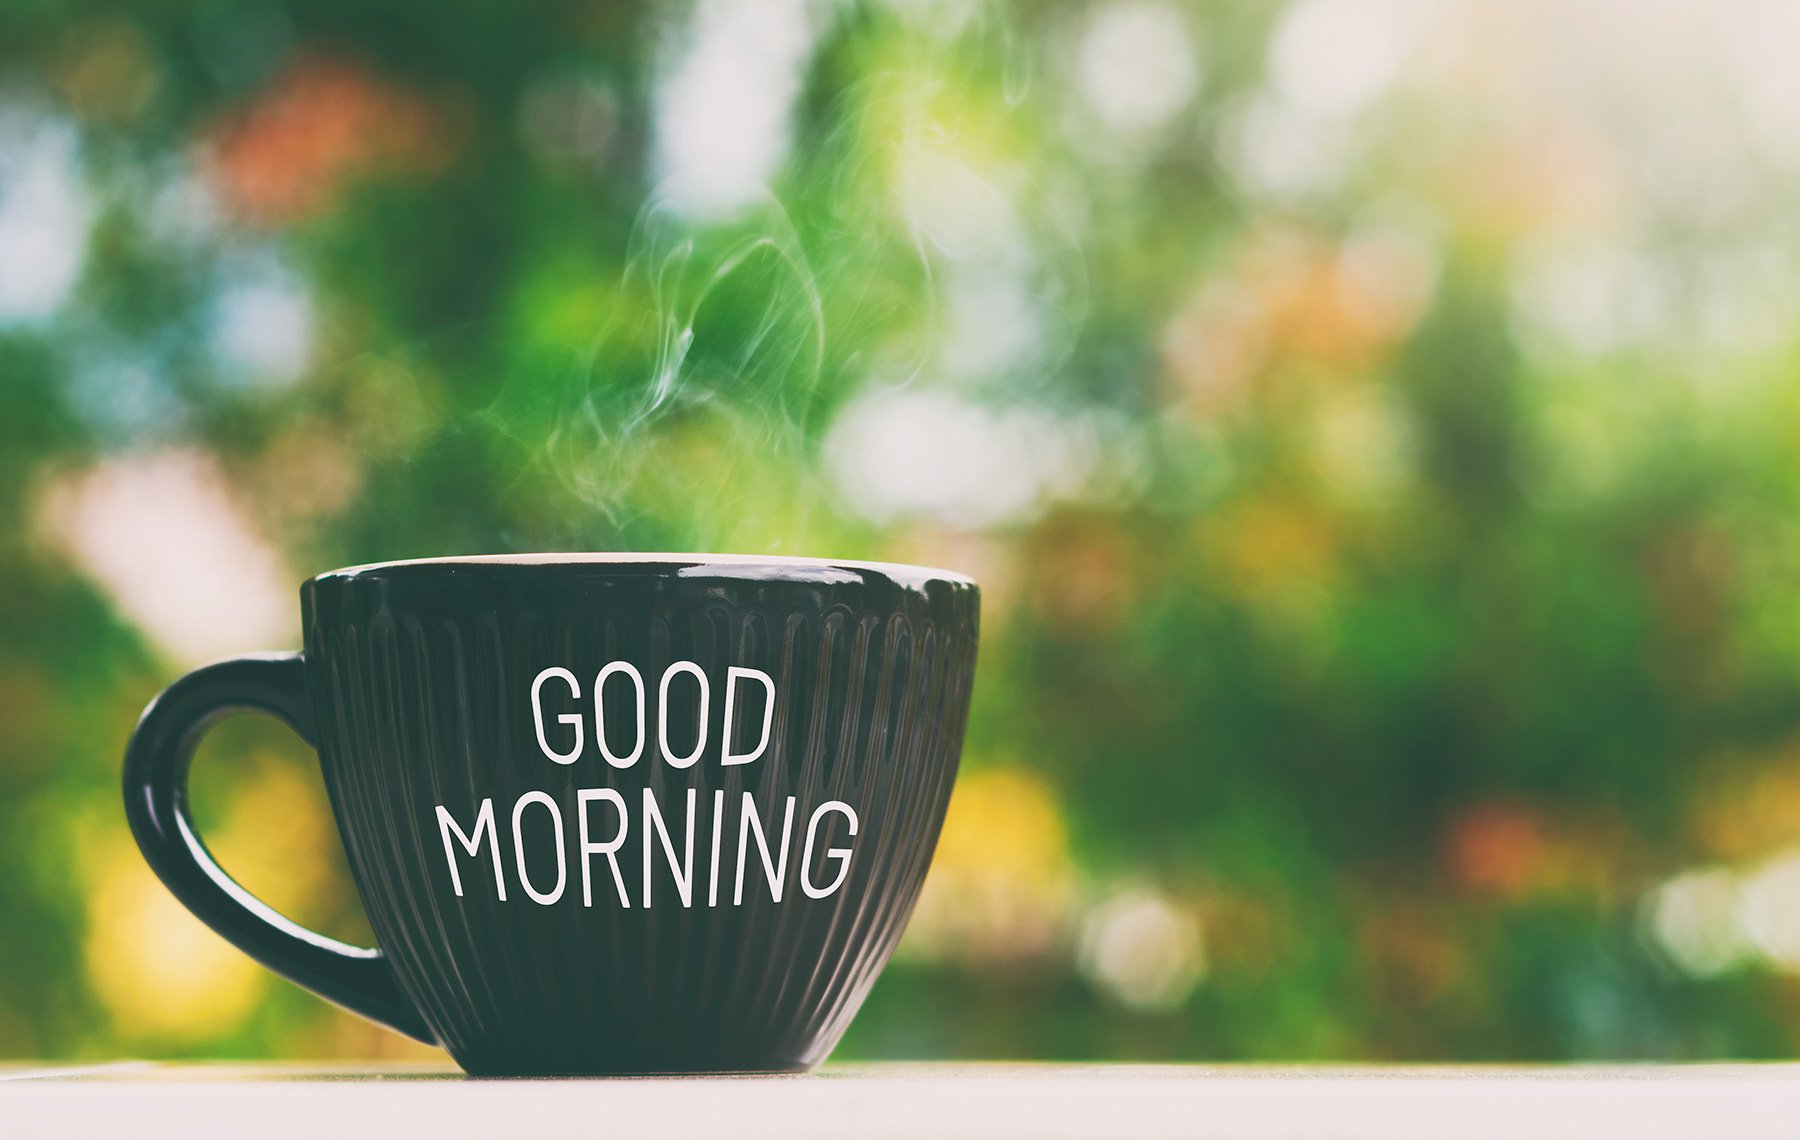 good morning greeting a cup of coffee-early bird vs night owl